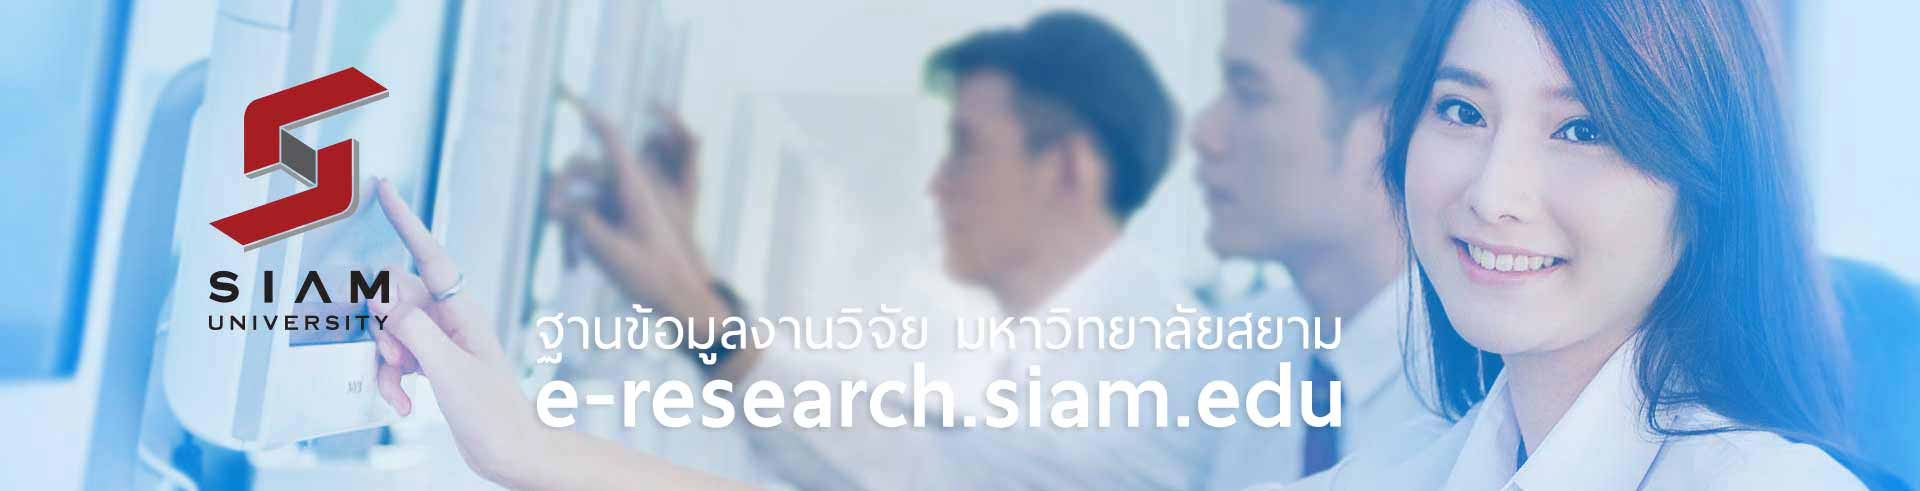 The Status and Prospects of Internet Finance Credit Services at Bangkok: A Case Study Based on Ant Check Later - ฐานข้อมูลงานวิจัย มหาวิทยาลัยสยาม